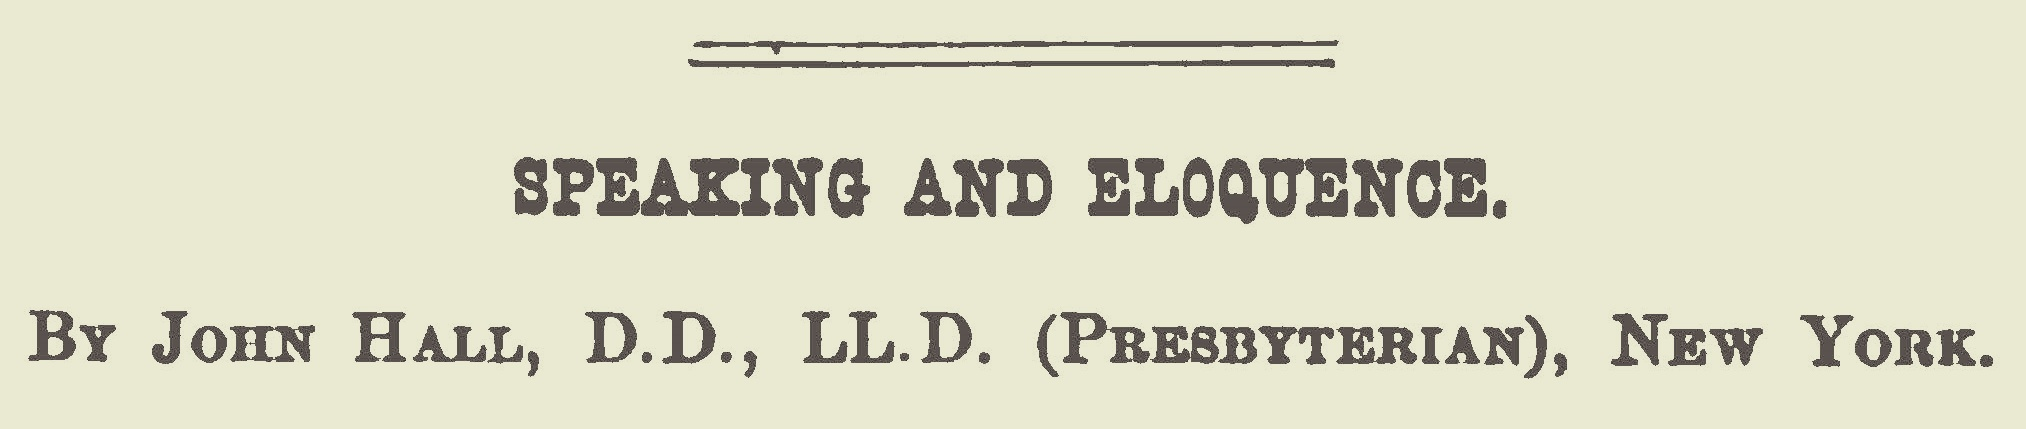 Hall, John, Speaking and Eloquence Title Page.jpg